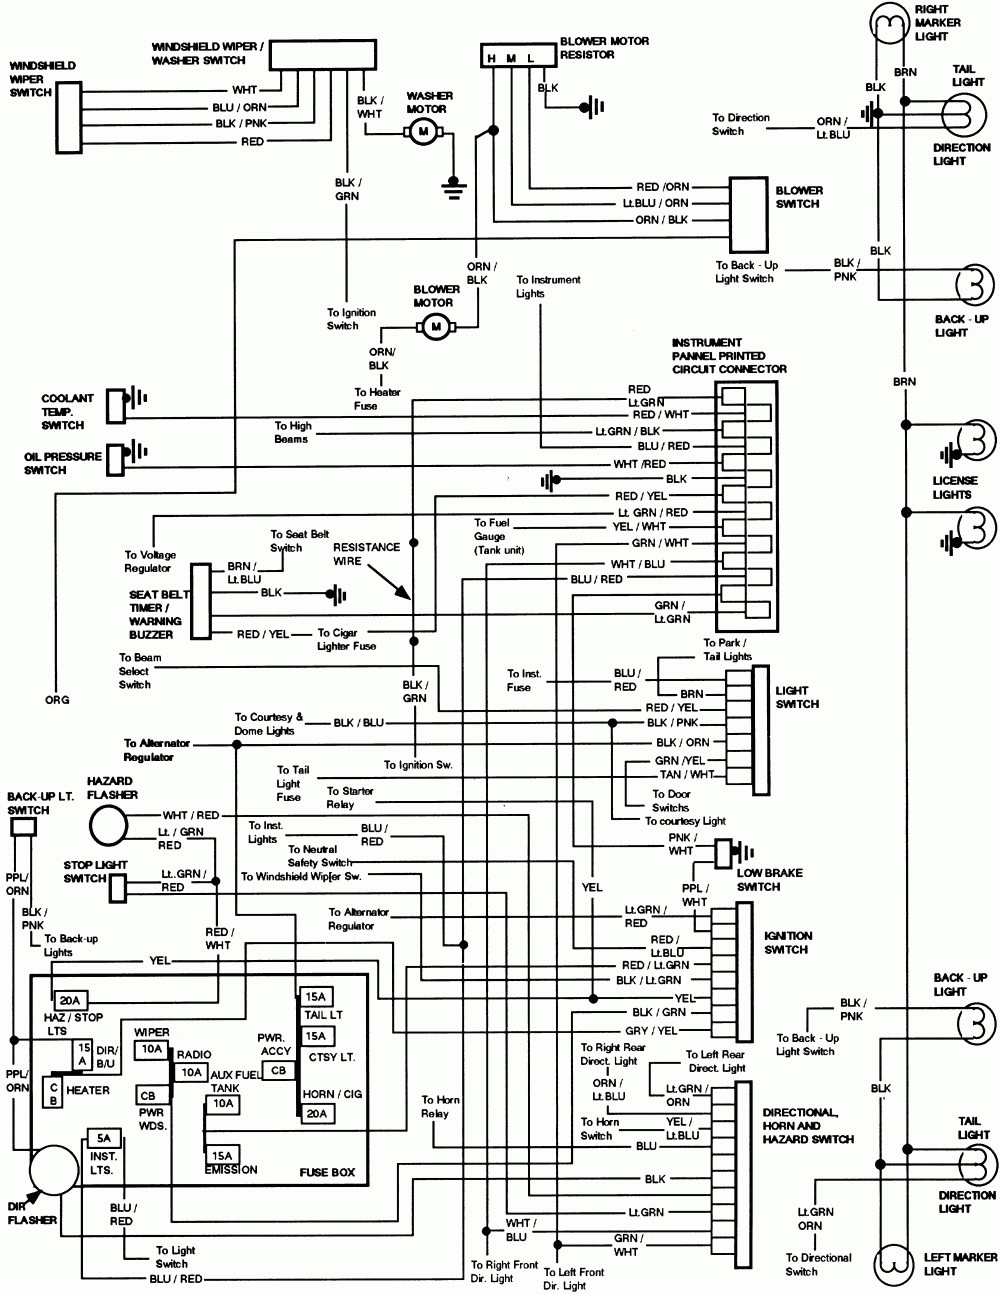 1990 ford f150 starter solenoid wiring diagram awesome 86 ford engine diagram wiring diagrams schematics of 1990 ford f150 starter solenoid wiring diagram 1994 ford wiring diagram wiring diagram site